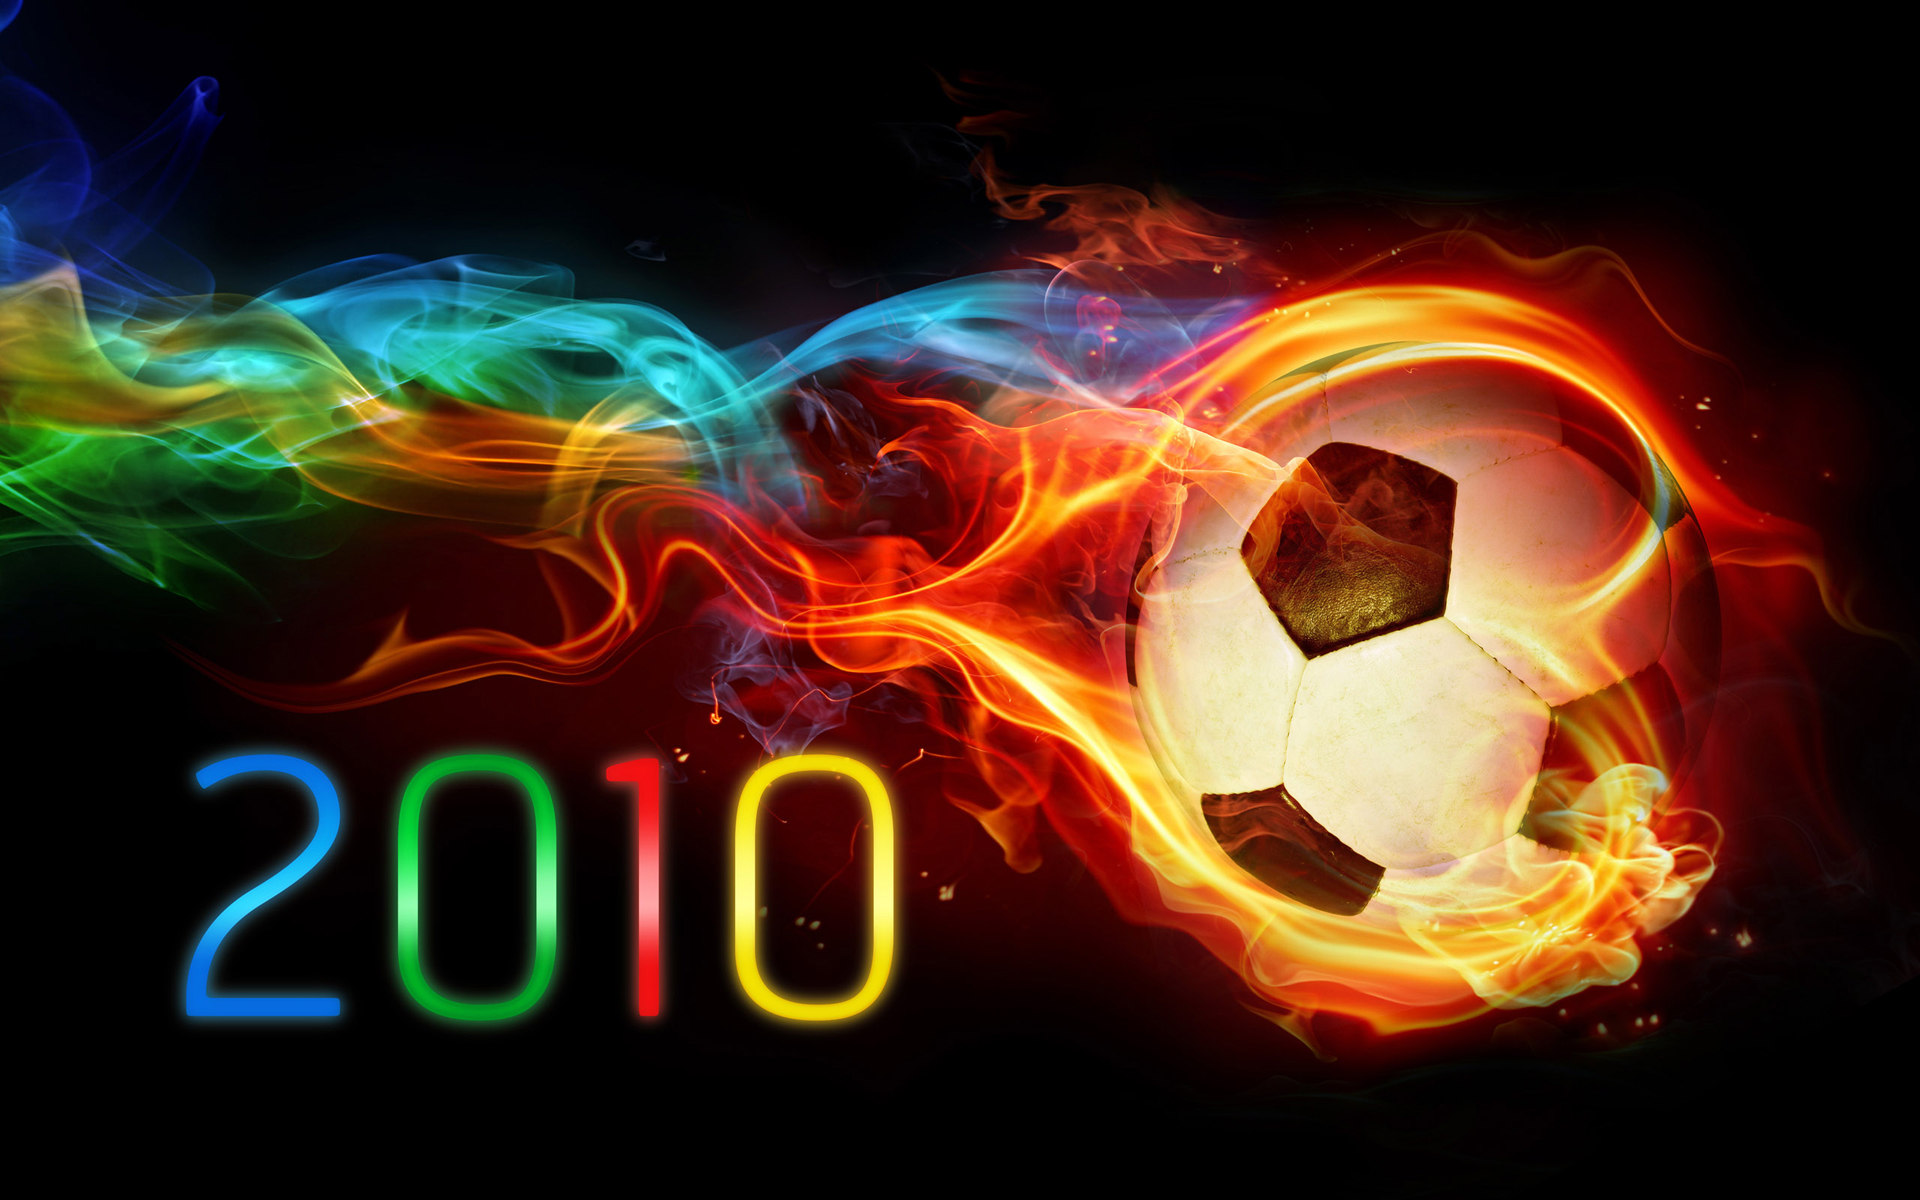 2010 HD Soccer FIFA Wallpapers HD Wallpapers 1920x1200